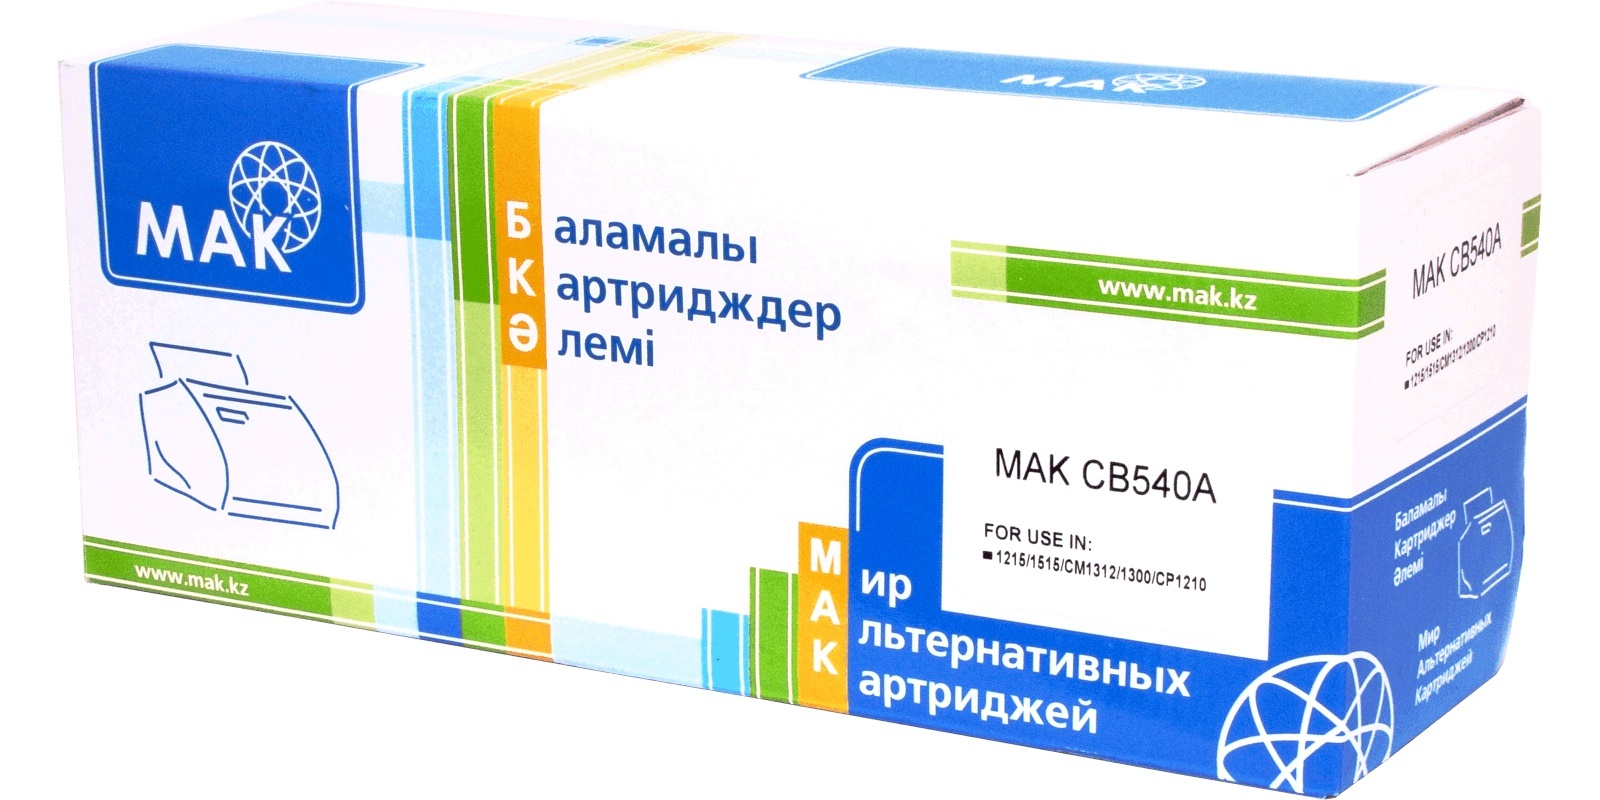 MAK №125A CB540A/Cartridge 316, 716, 416, 116, черный, для HP/Canon, до 2200 стр.